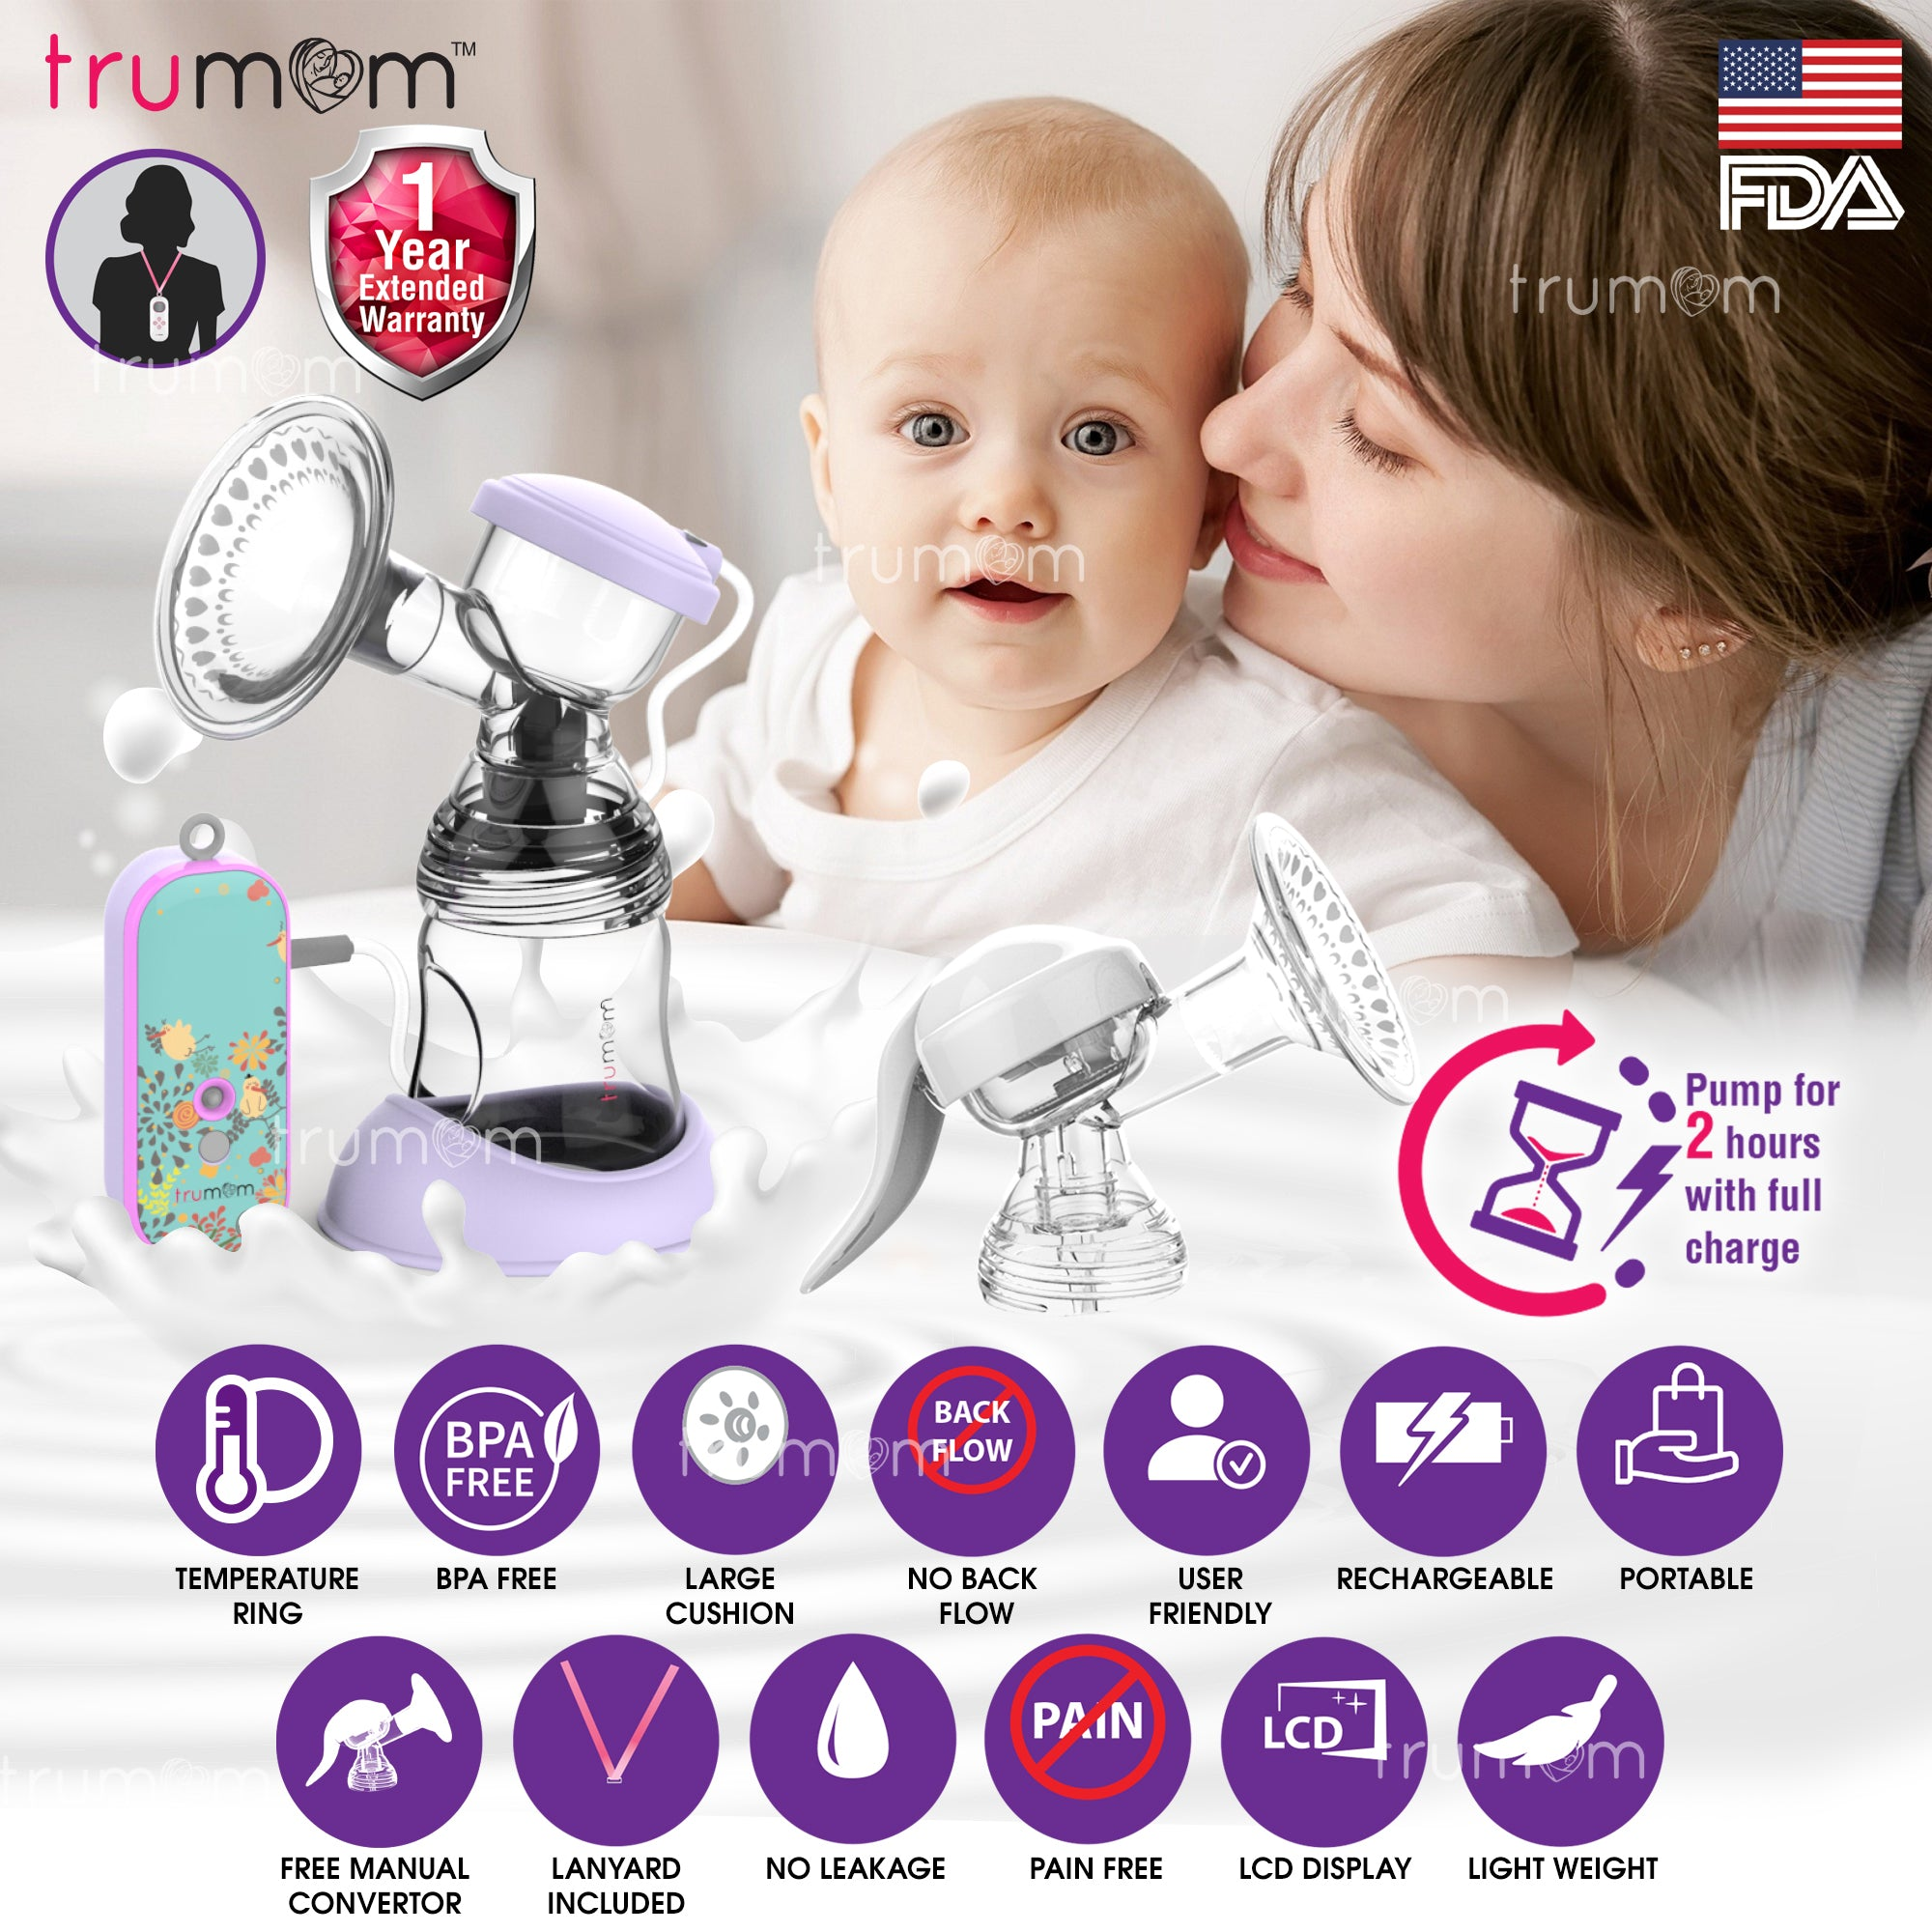 Trumom (USA) Lavender Rechargeable Electric Breast Milk Feeding Pump with Manual Convertor Kit & Temperature Indicator Ring - trumom